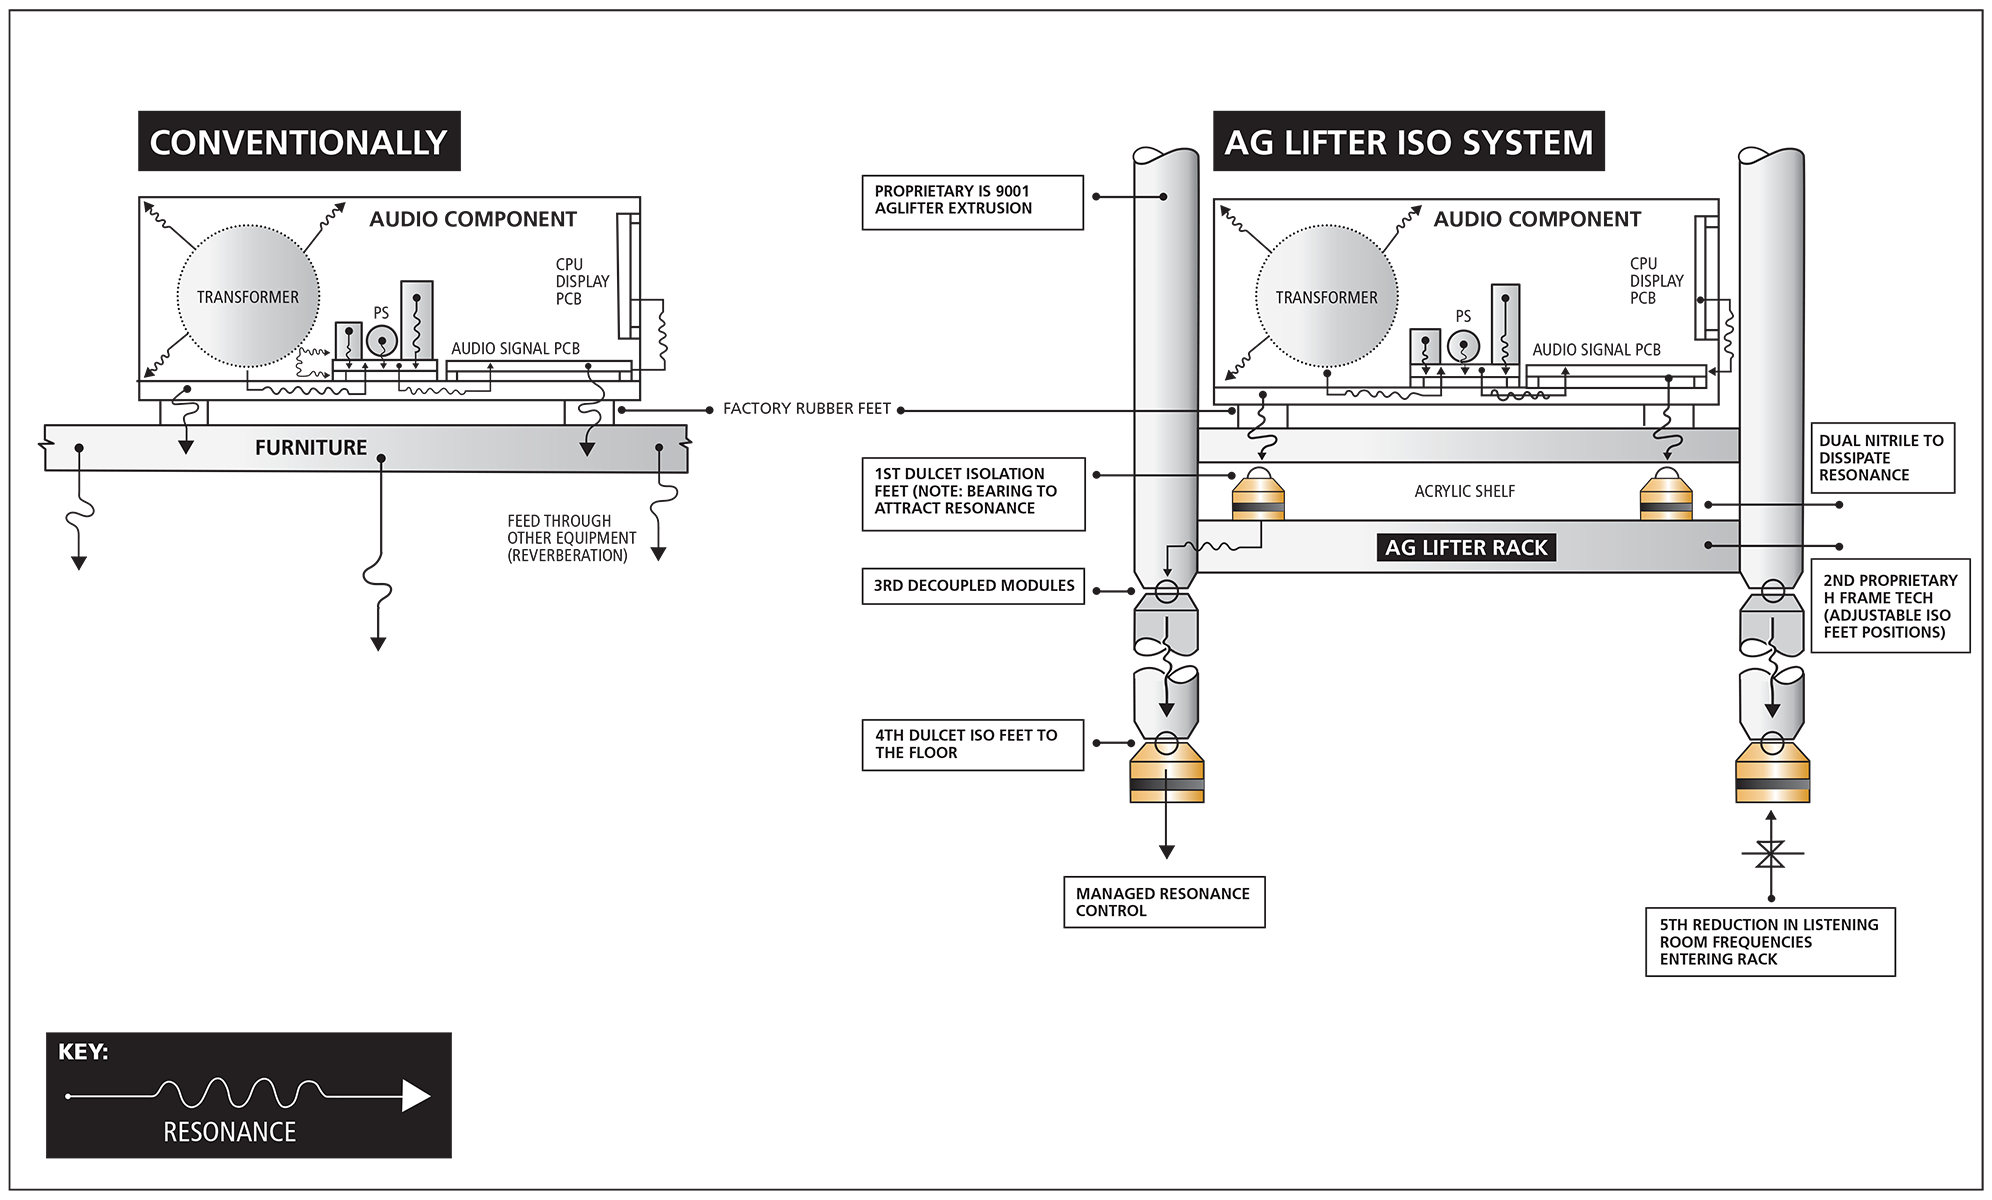 AG Lifter ISO System Diagram